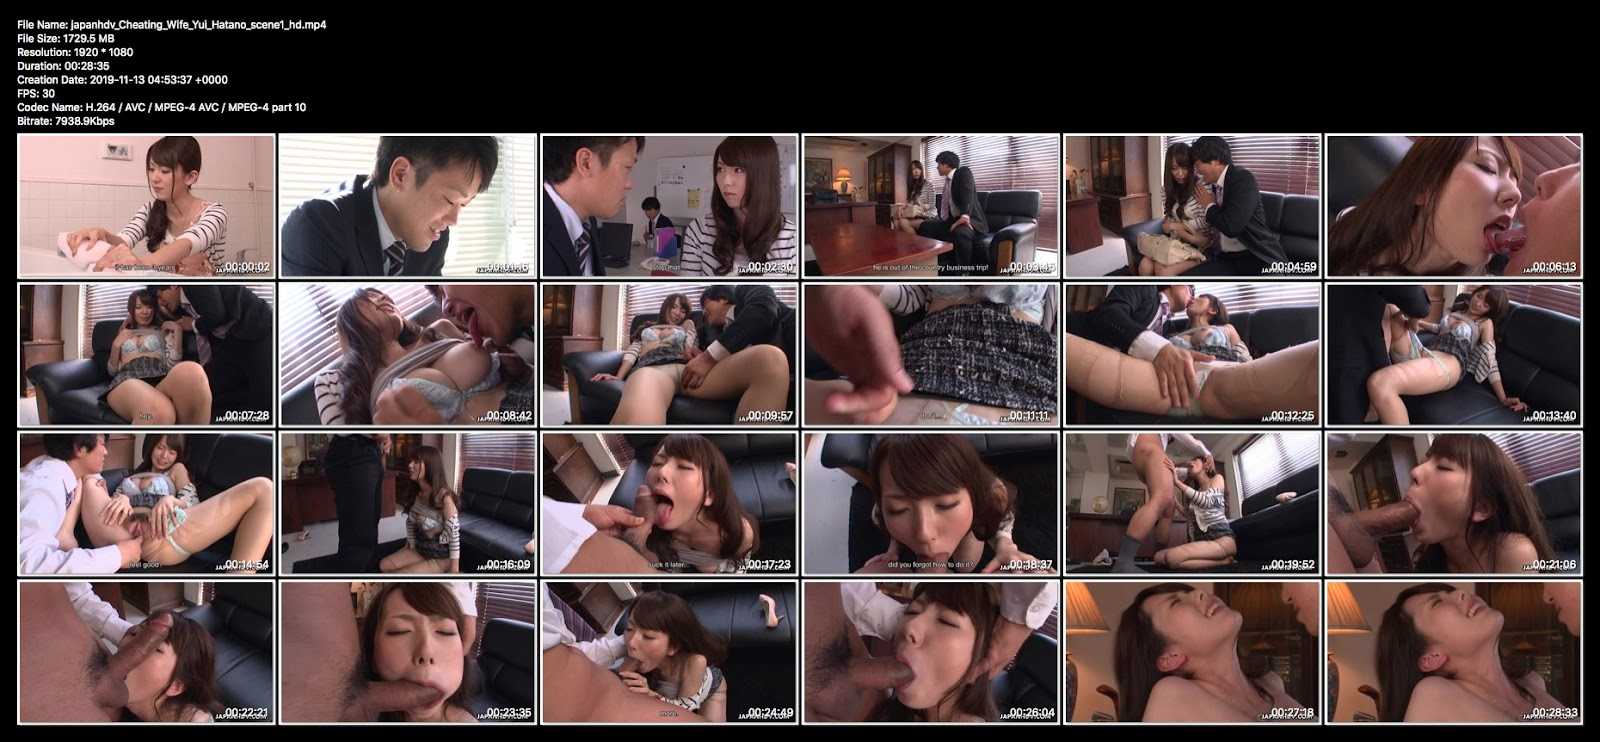 japanhdv Cheating_Wife_Yui_Hatano_scene1_hd japanhdv_Cheating_Wife_Yui_Hatano_scene1_hd